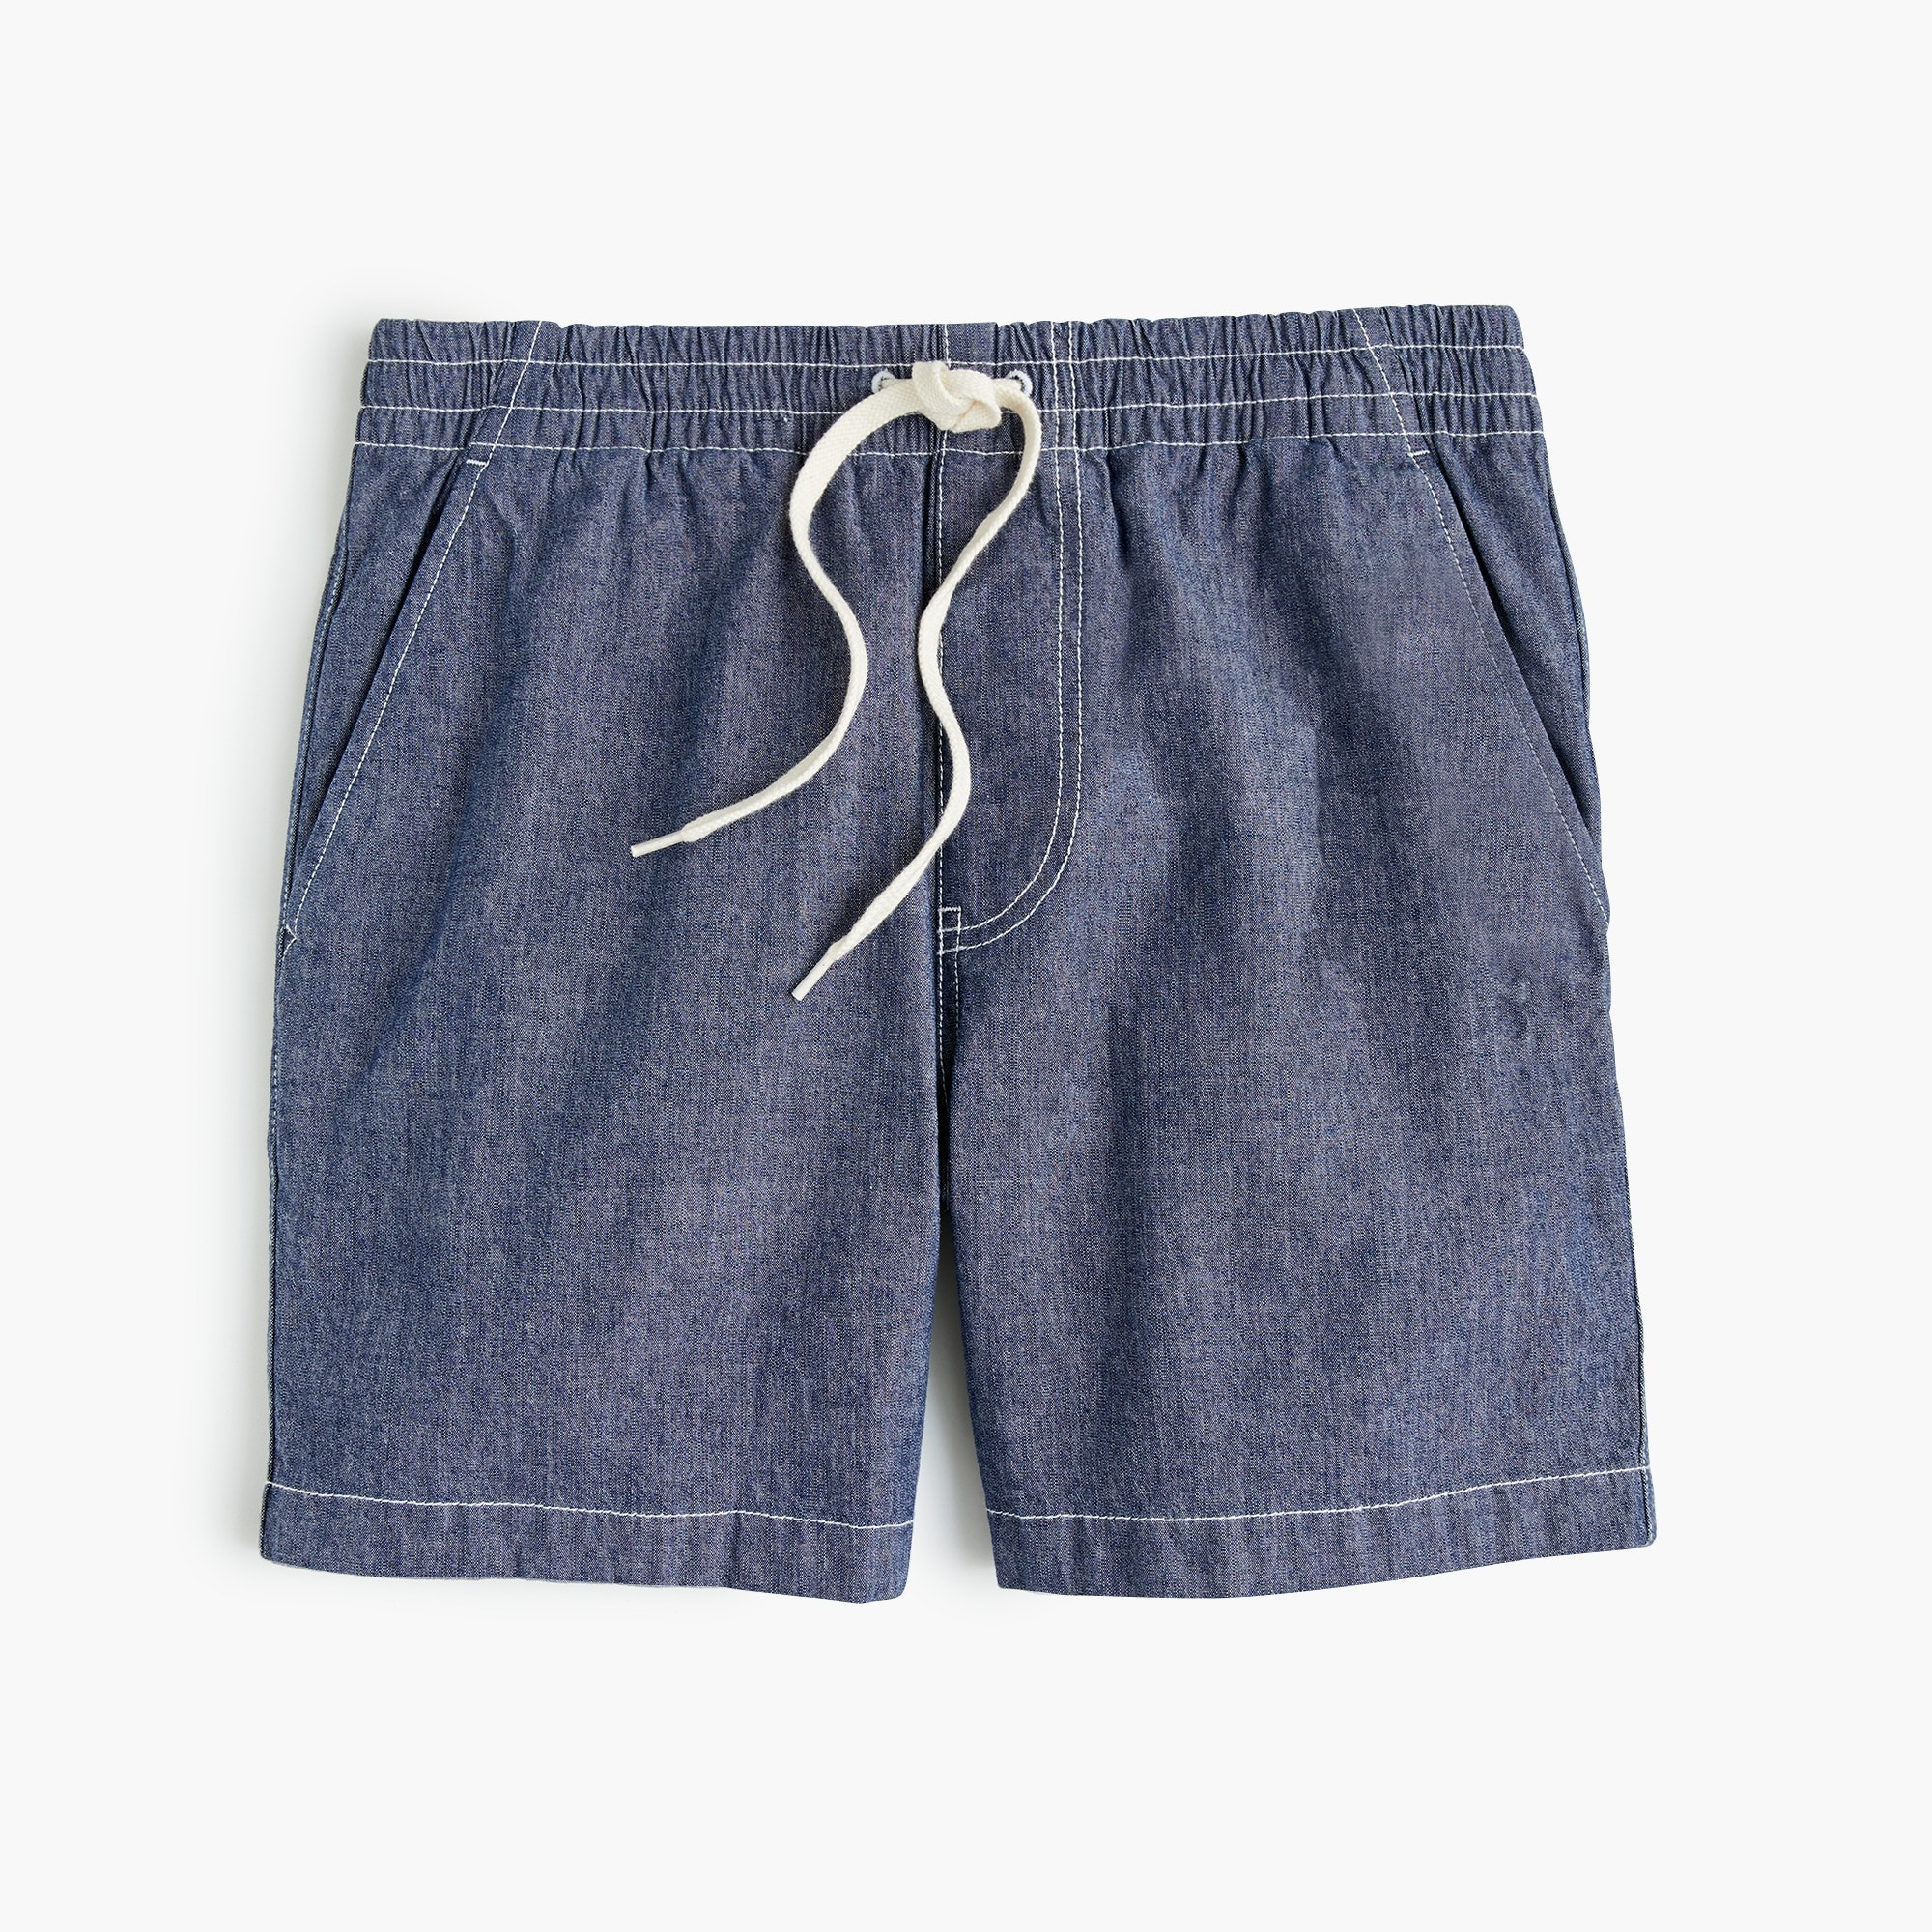 Image 4 for Stretch dock short in chambray